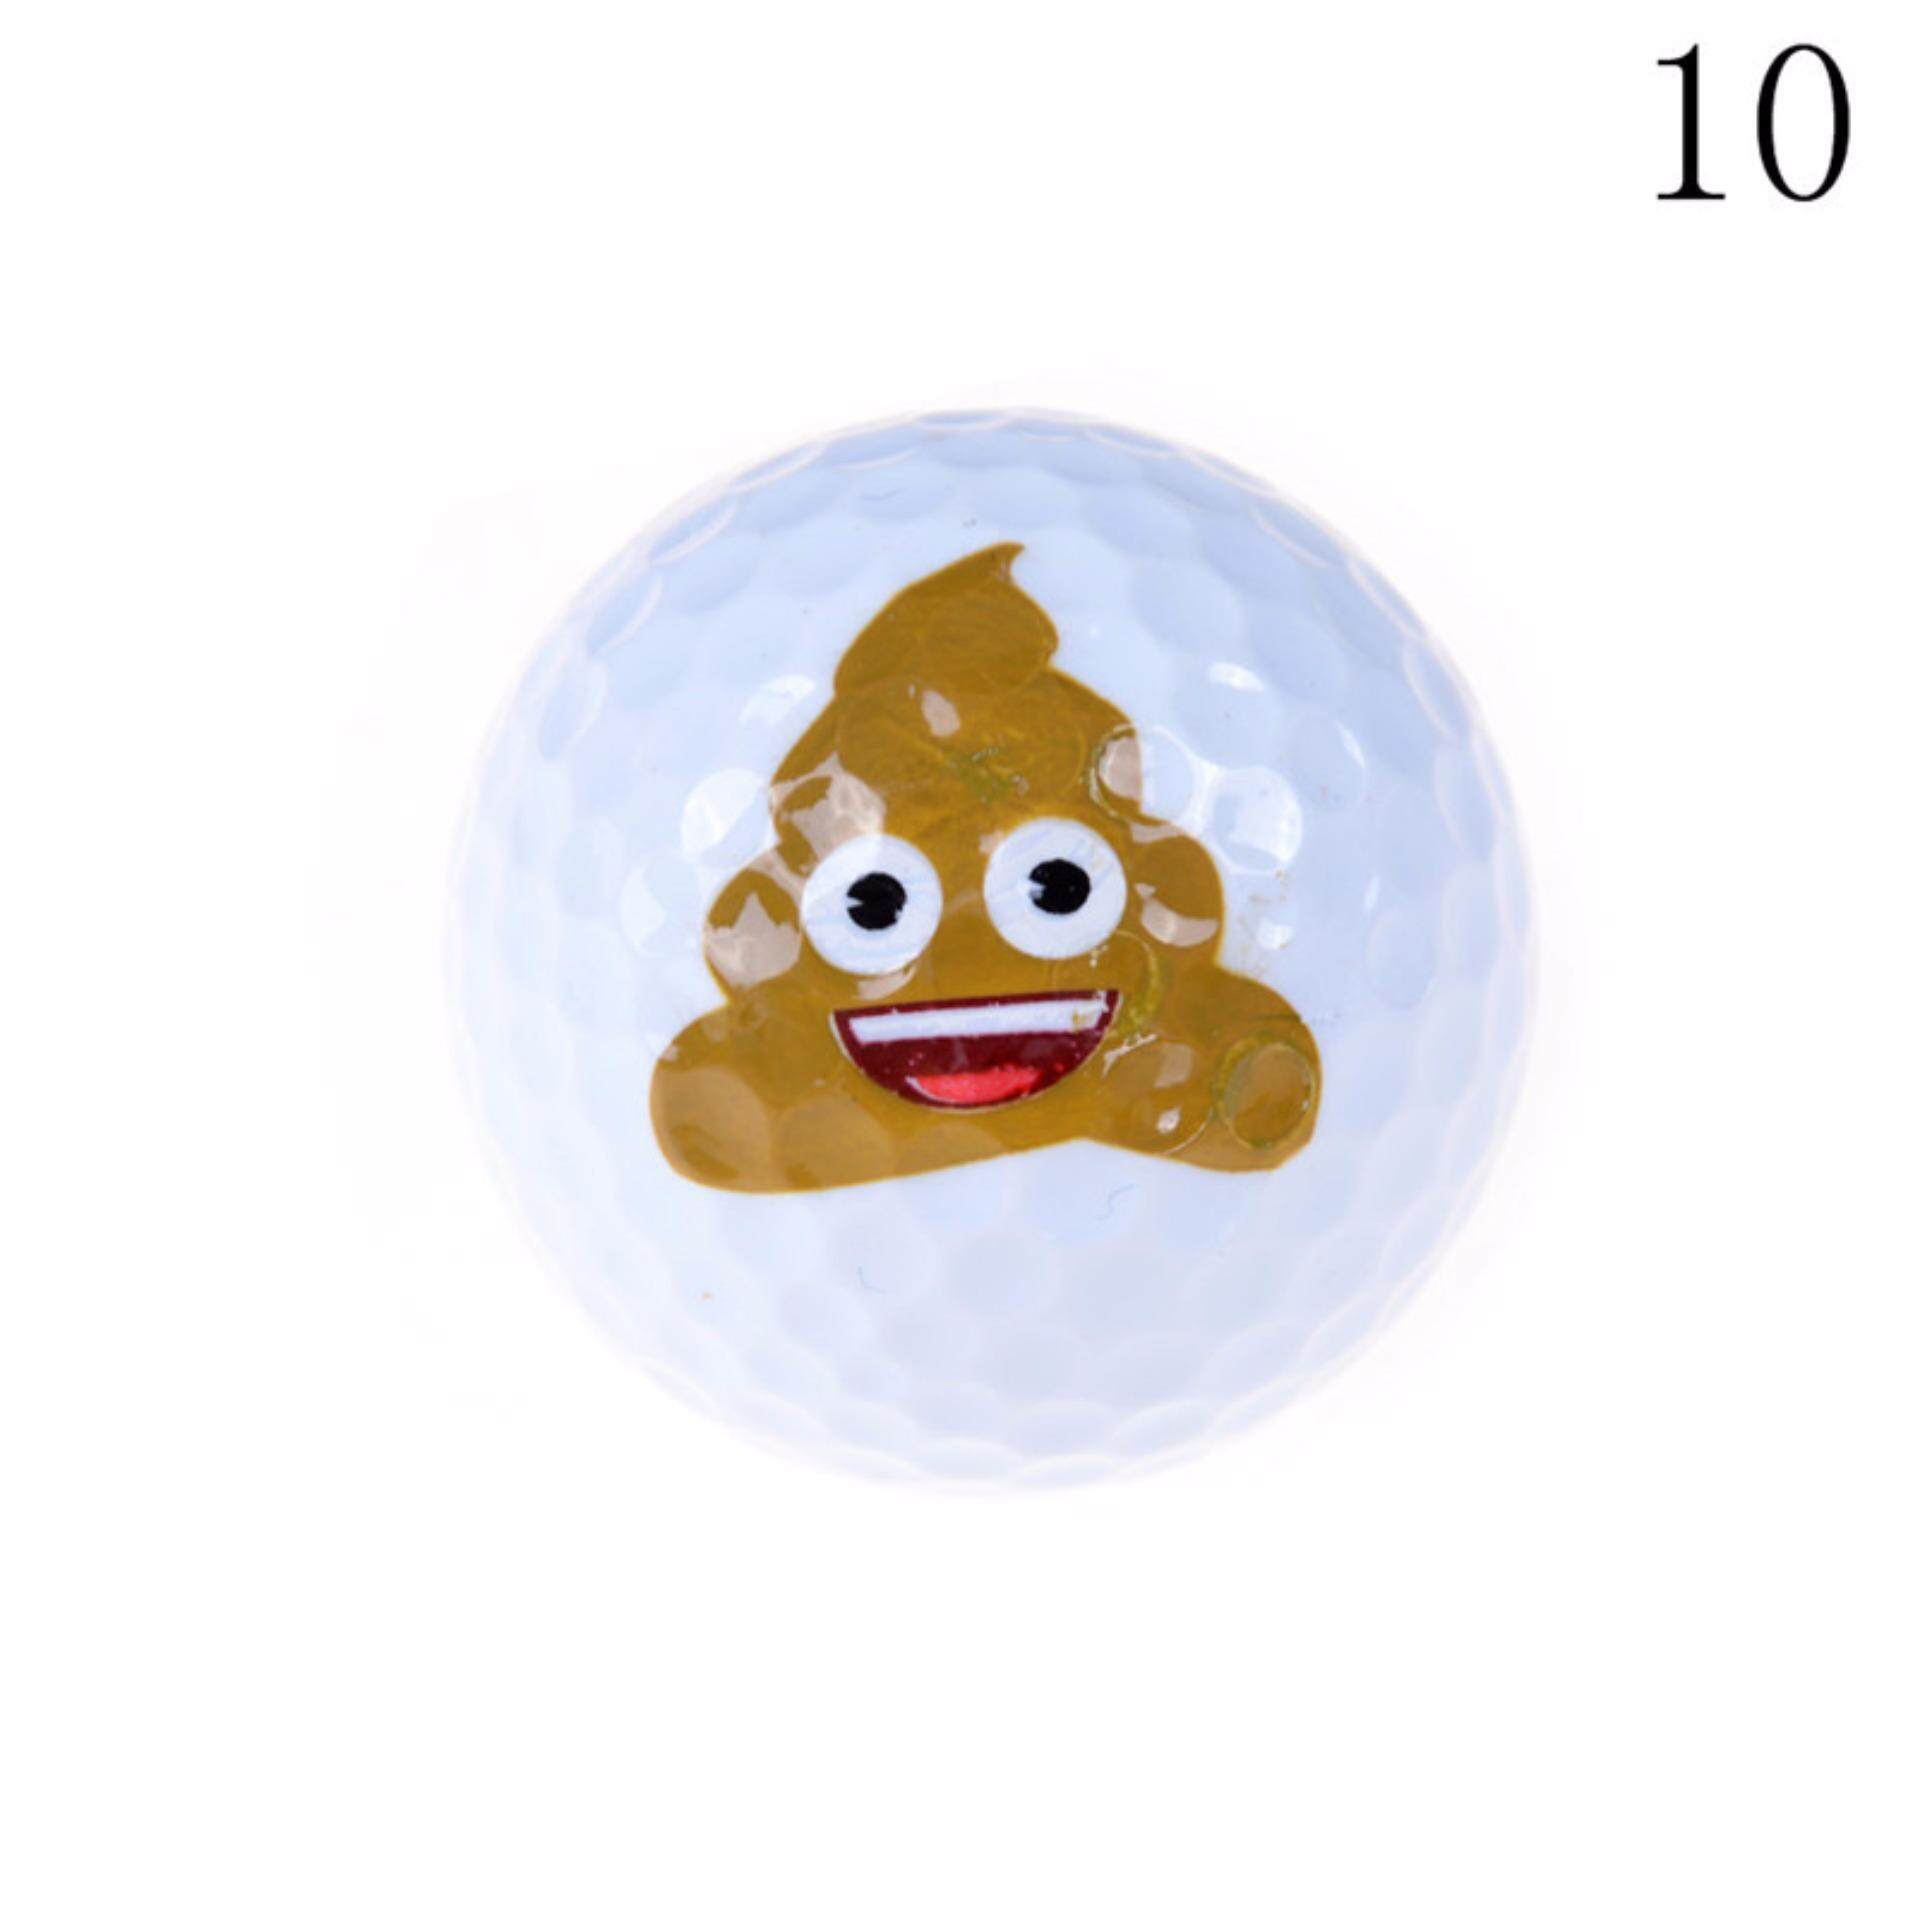 Emoji Novelty Practice Golf Balls Toy Kids Gifts For Outdoor Or Field Playing  Type:10.